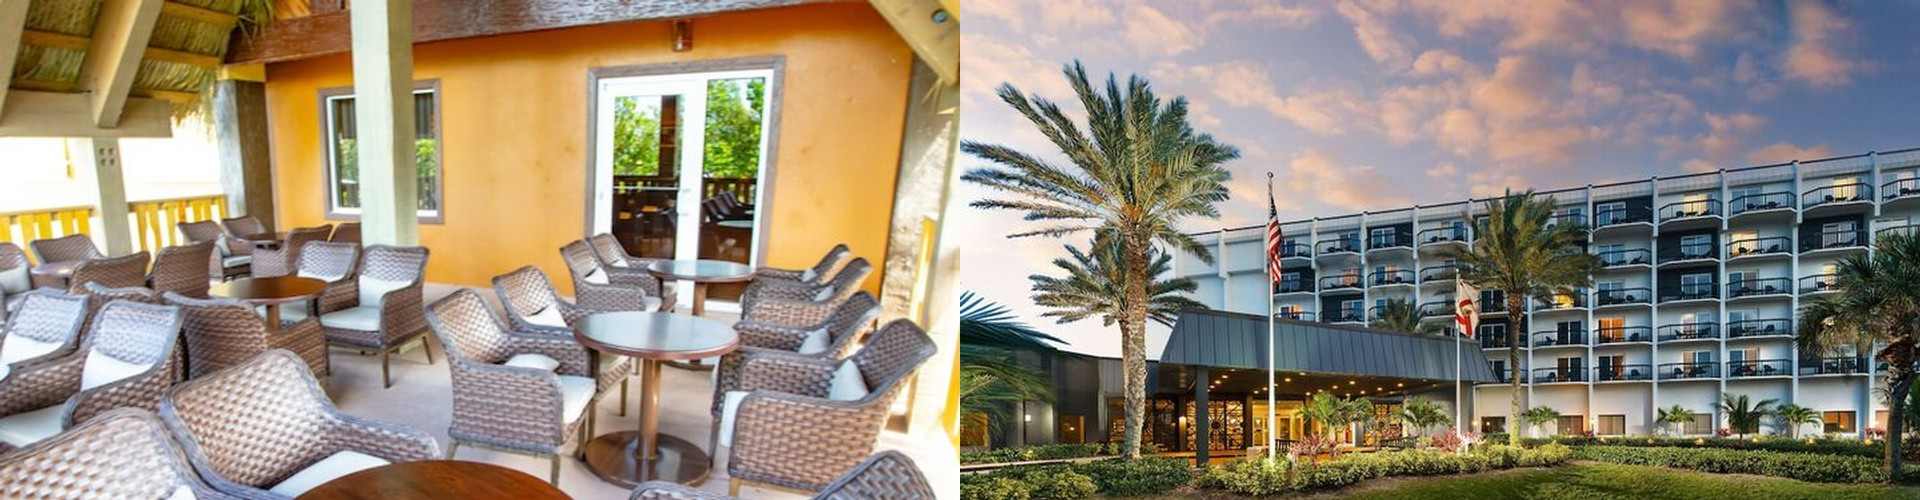 BEST things to do in Cocoa Beach FL + Stuff to see